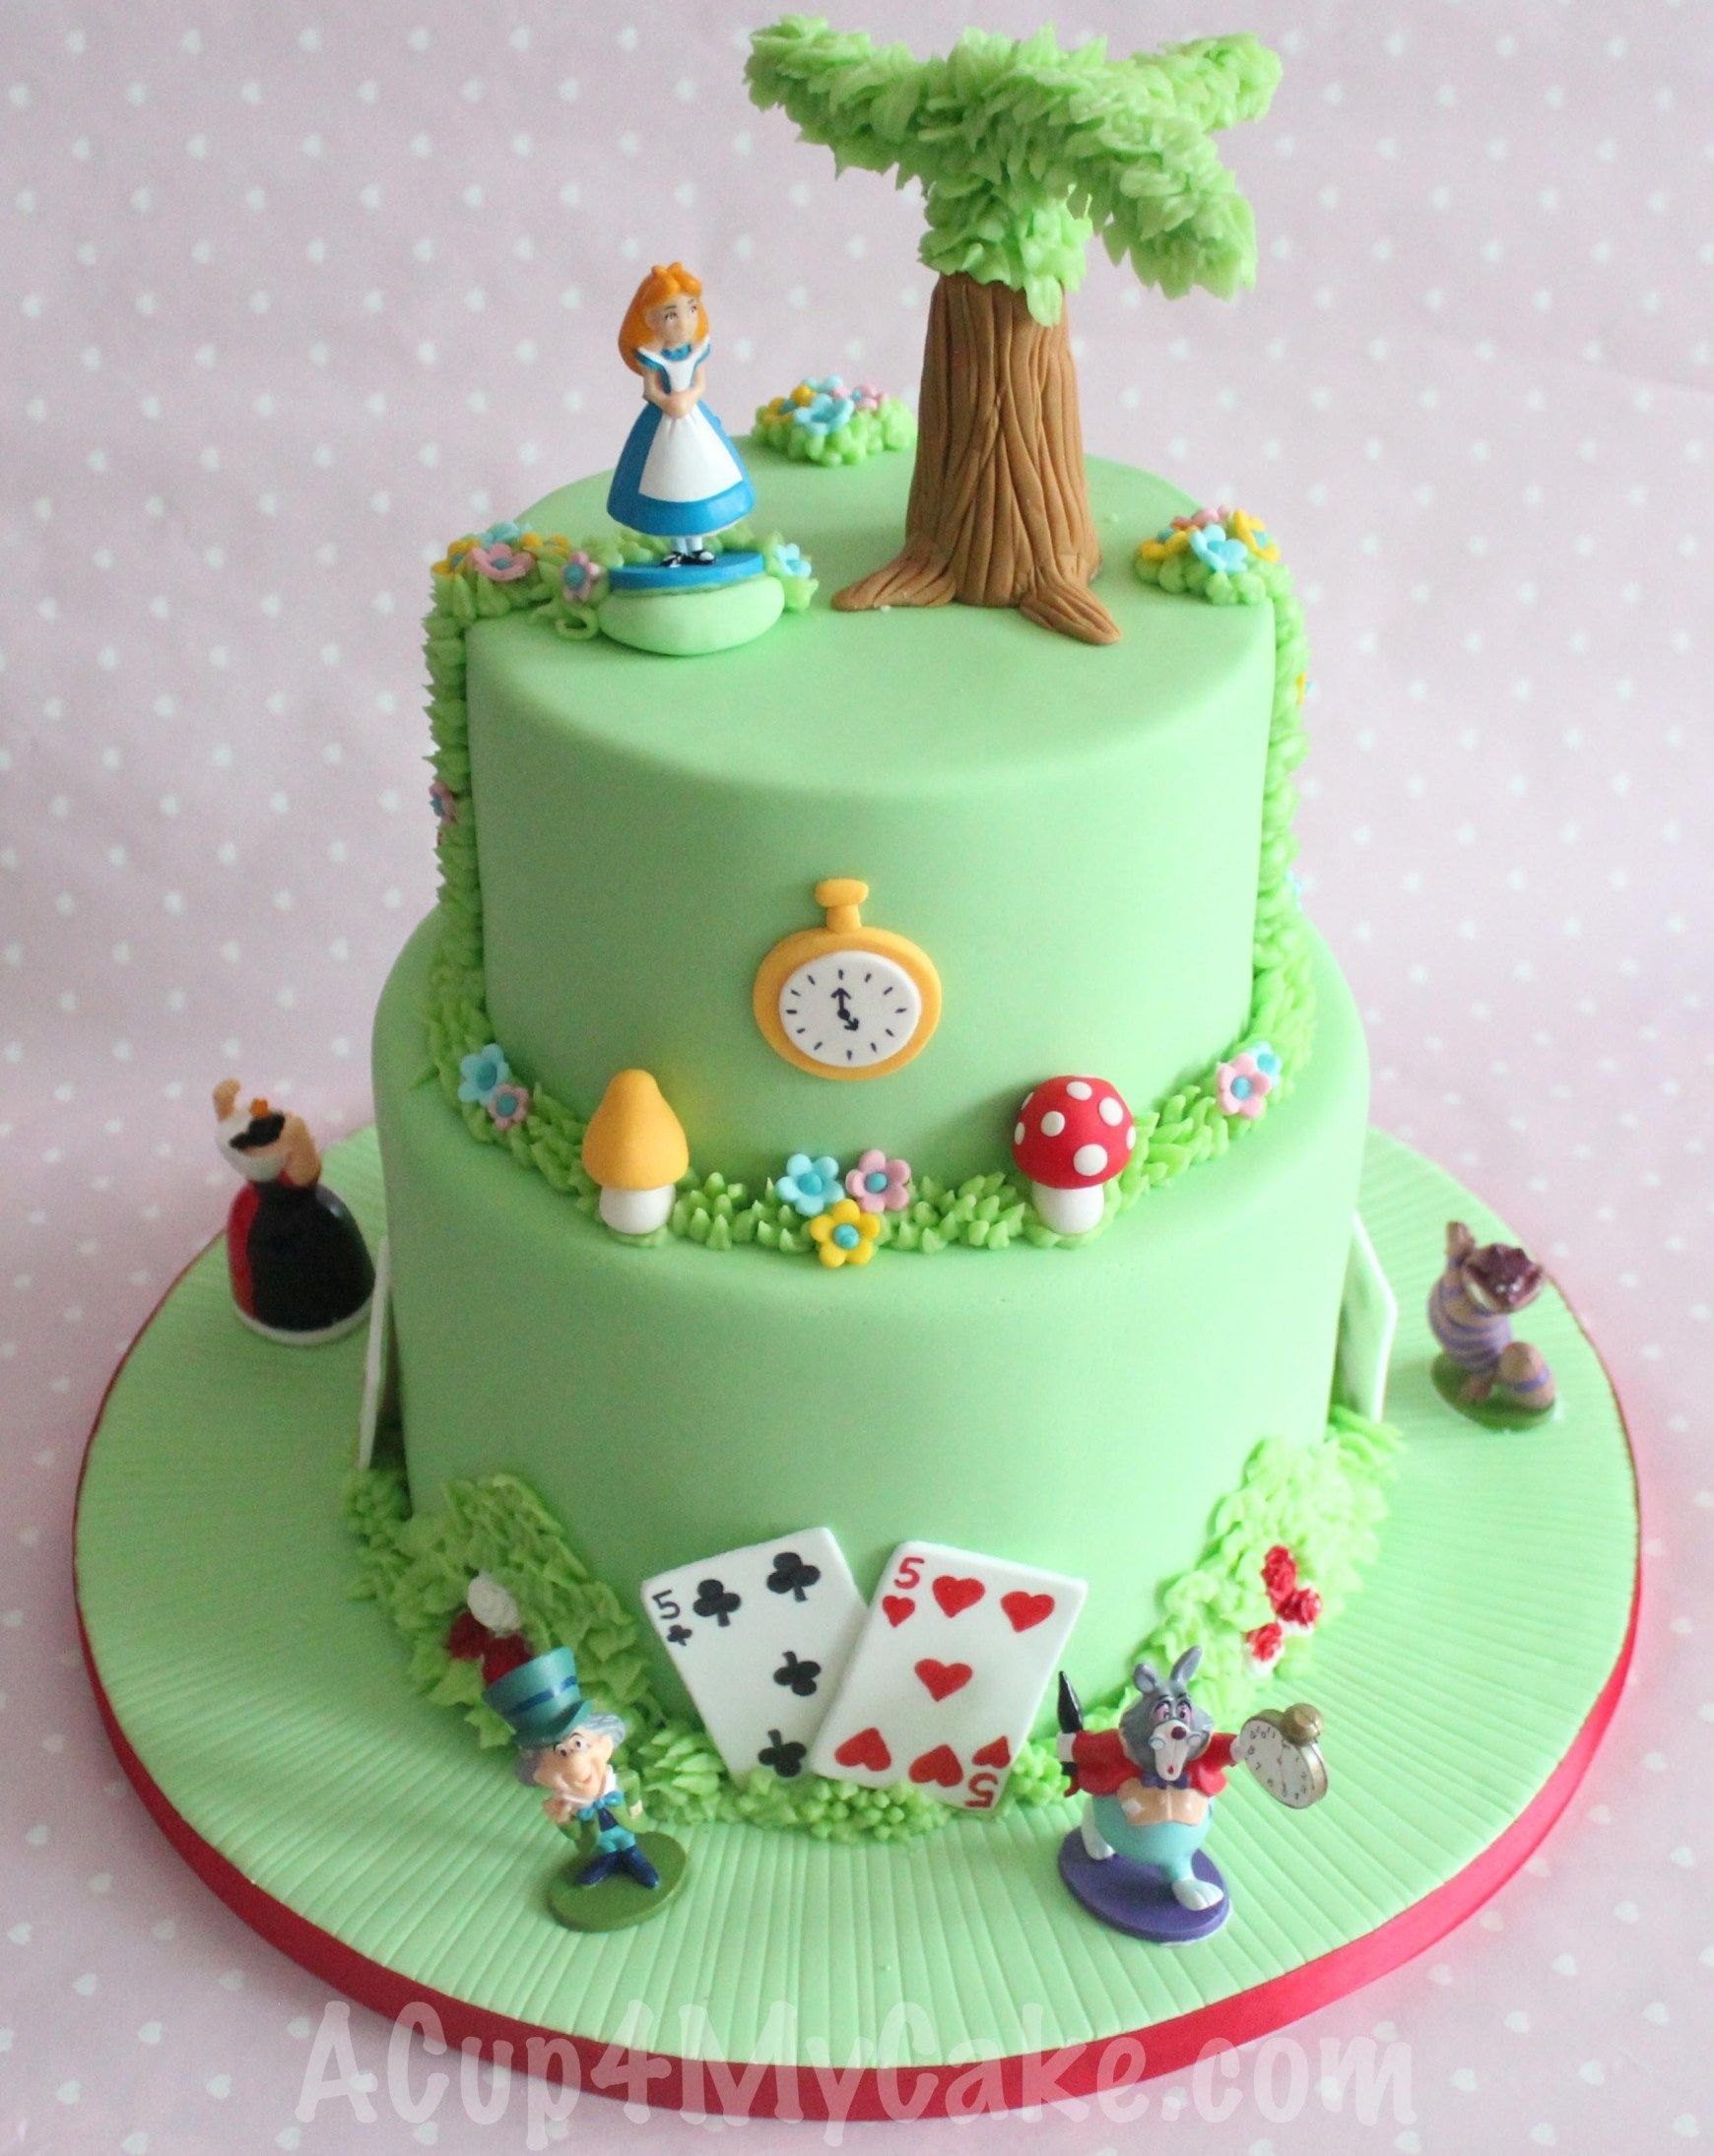 25 Marvelous Picture Of Alice In Wonderland Birthday Cake Cool